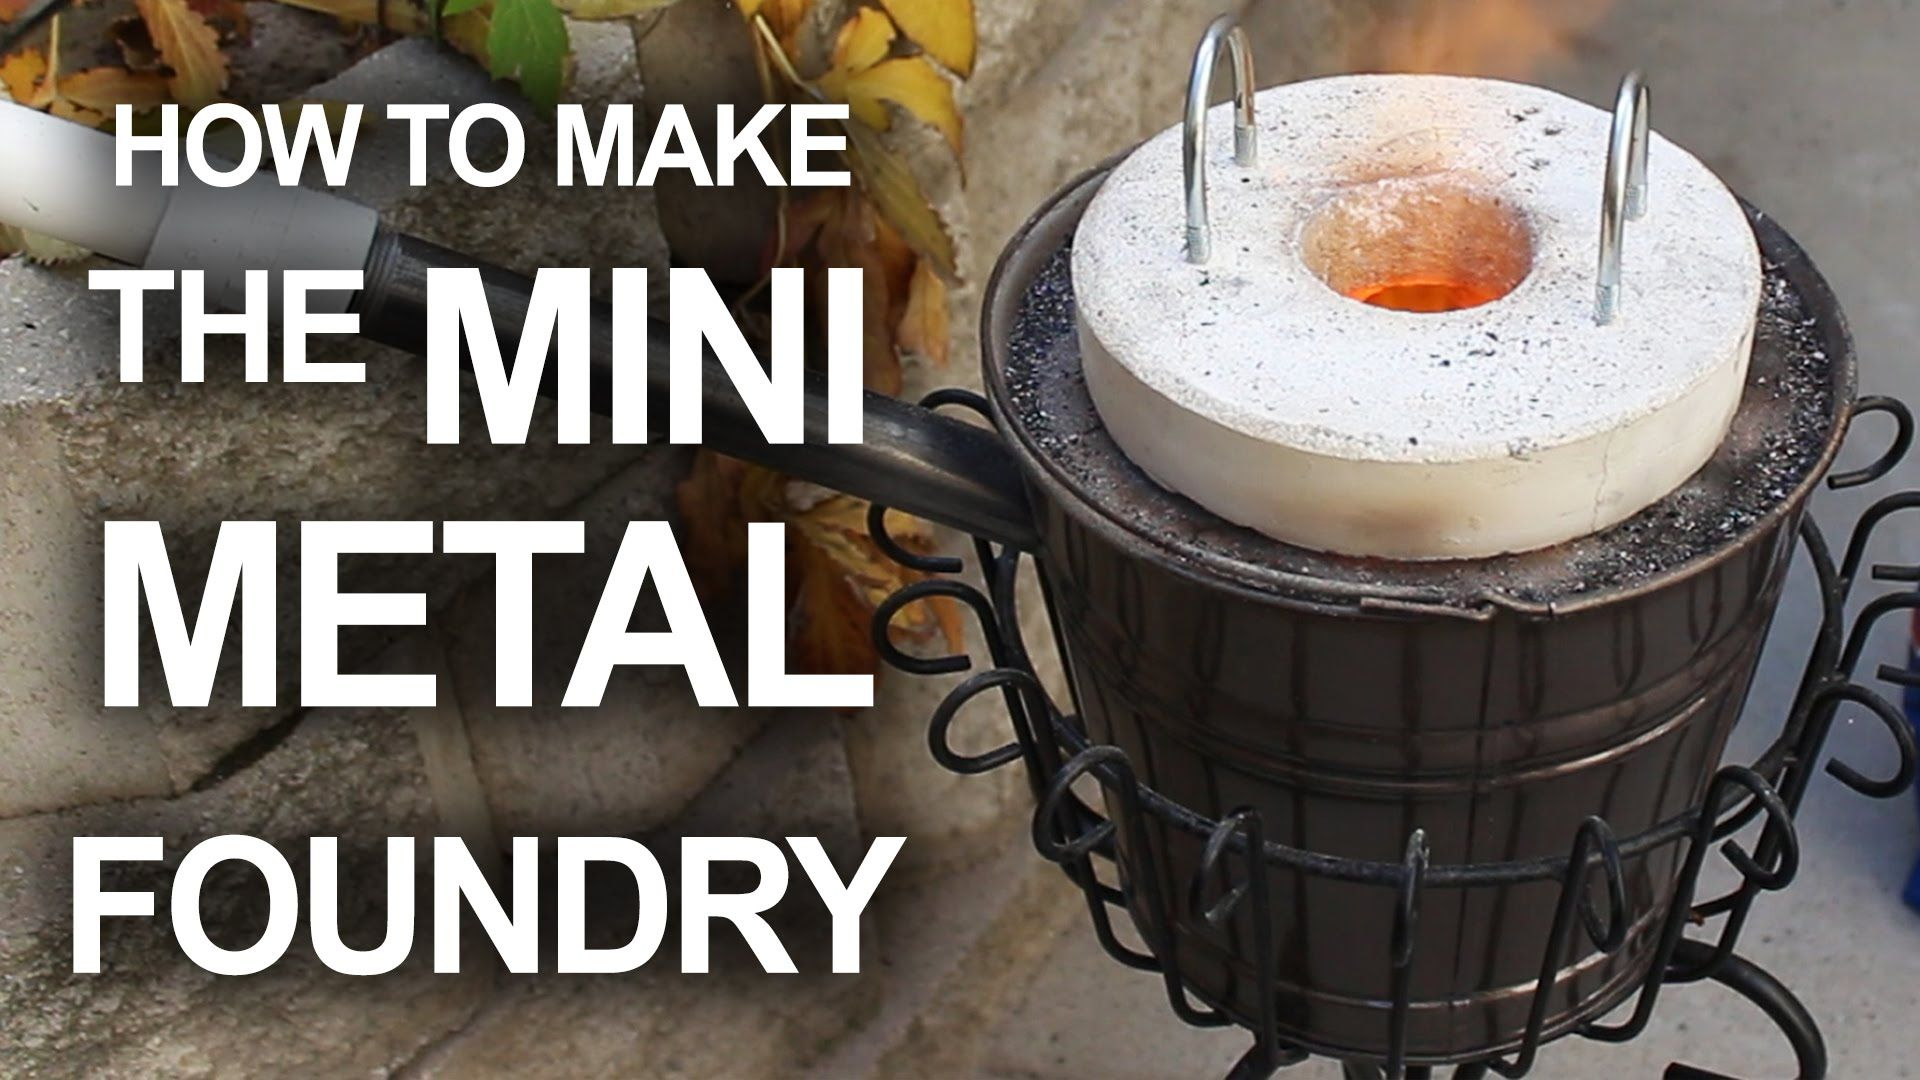 How to Make a Simple and Inexpensive Mini Metal Foundry for Melting Pop Cans and Casting Aluminum